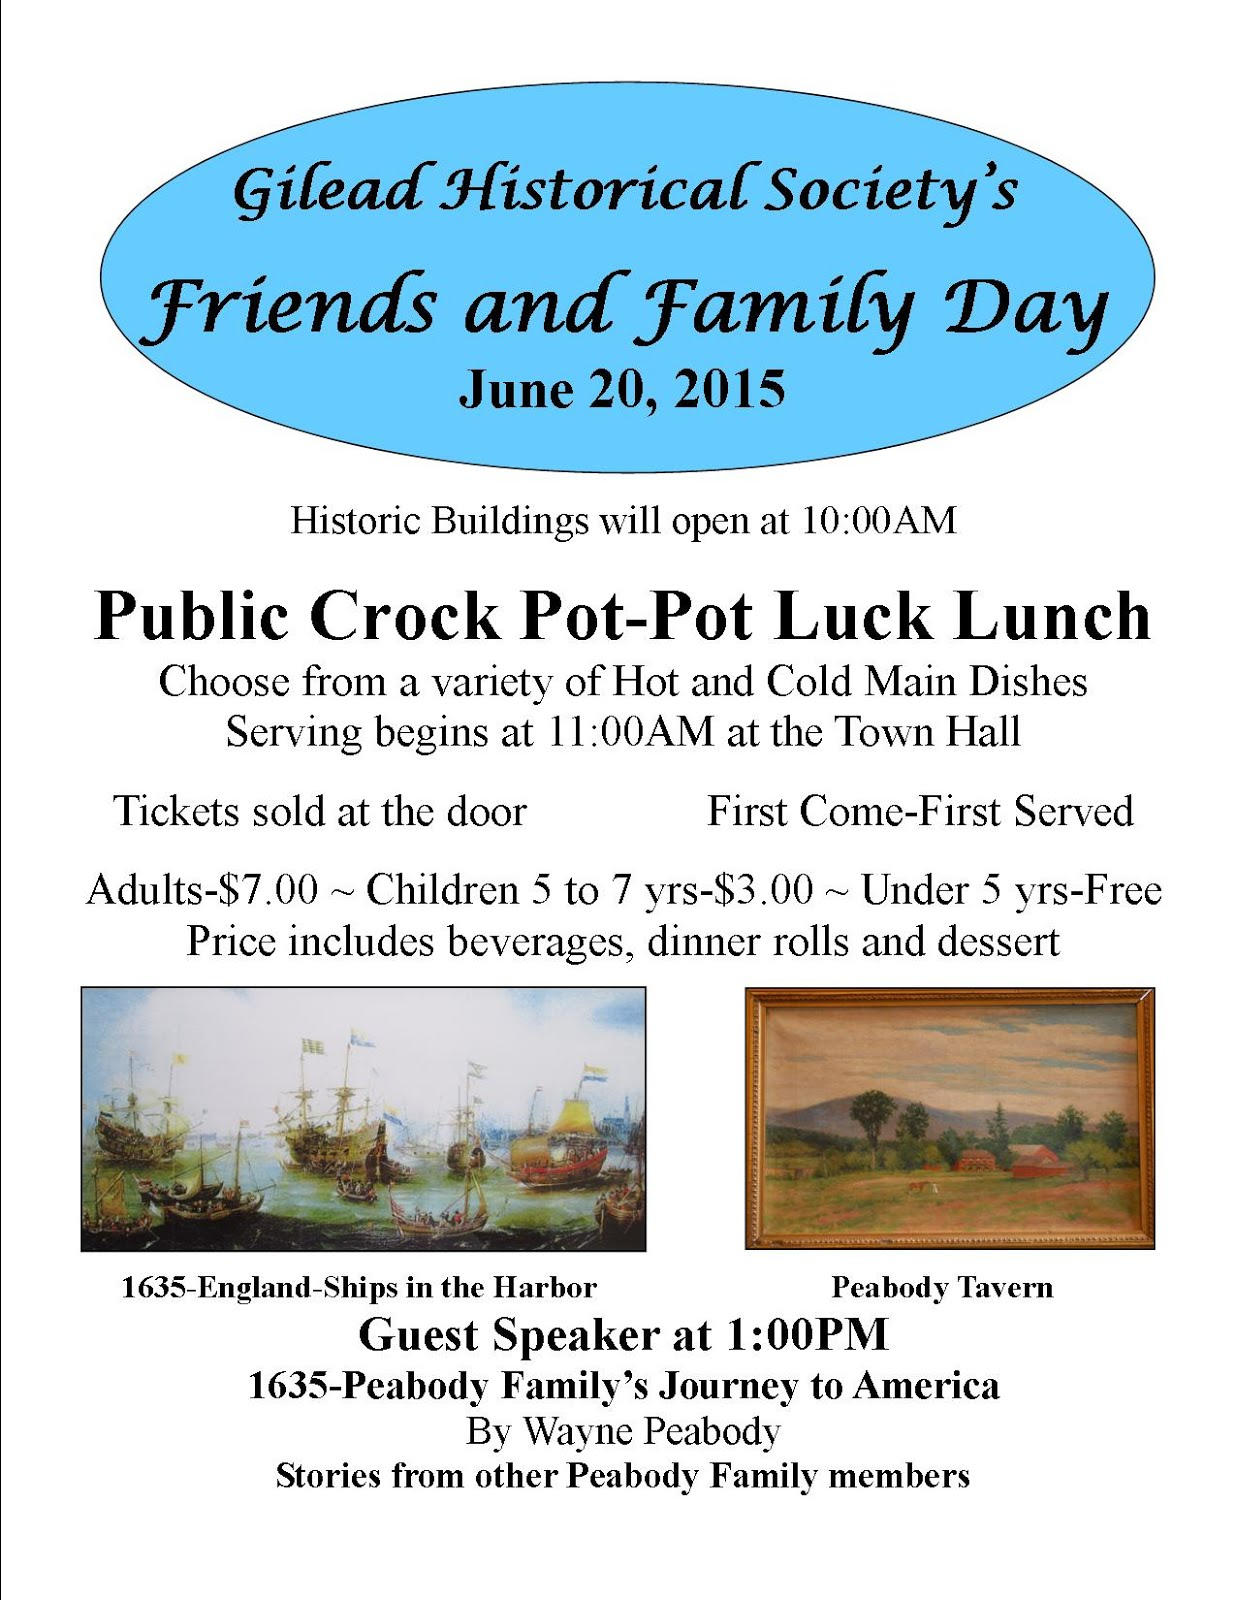 2015 Friends and Family Day